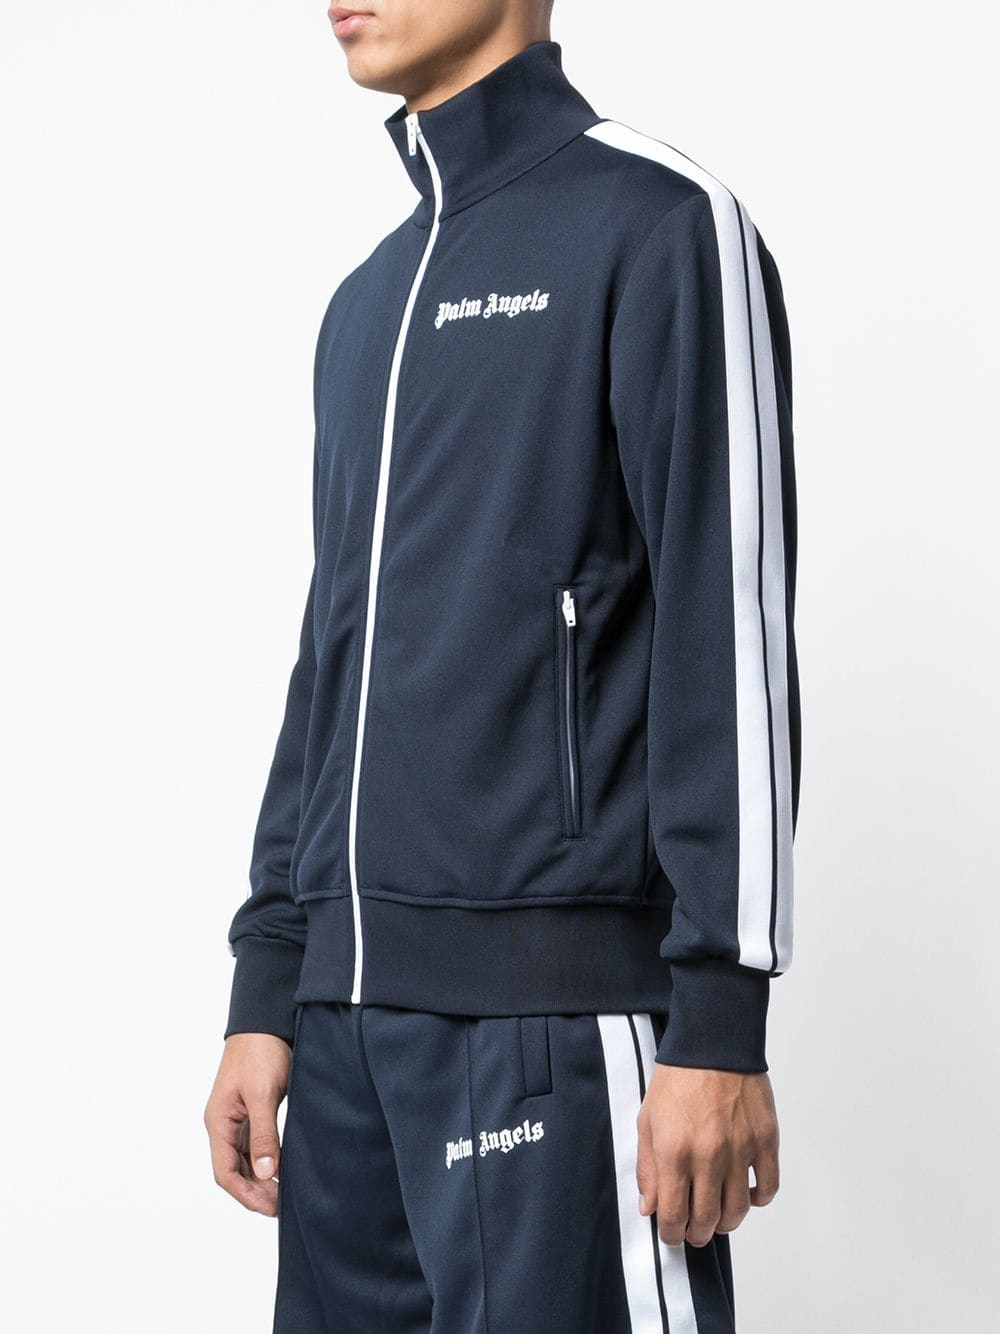 PALM ANGELS MEN CLASSIC TRACK JACKET